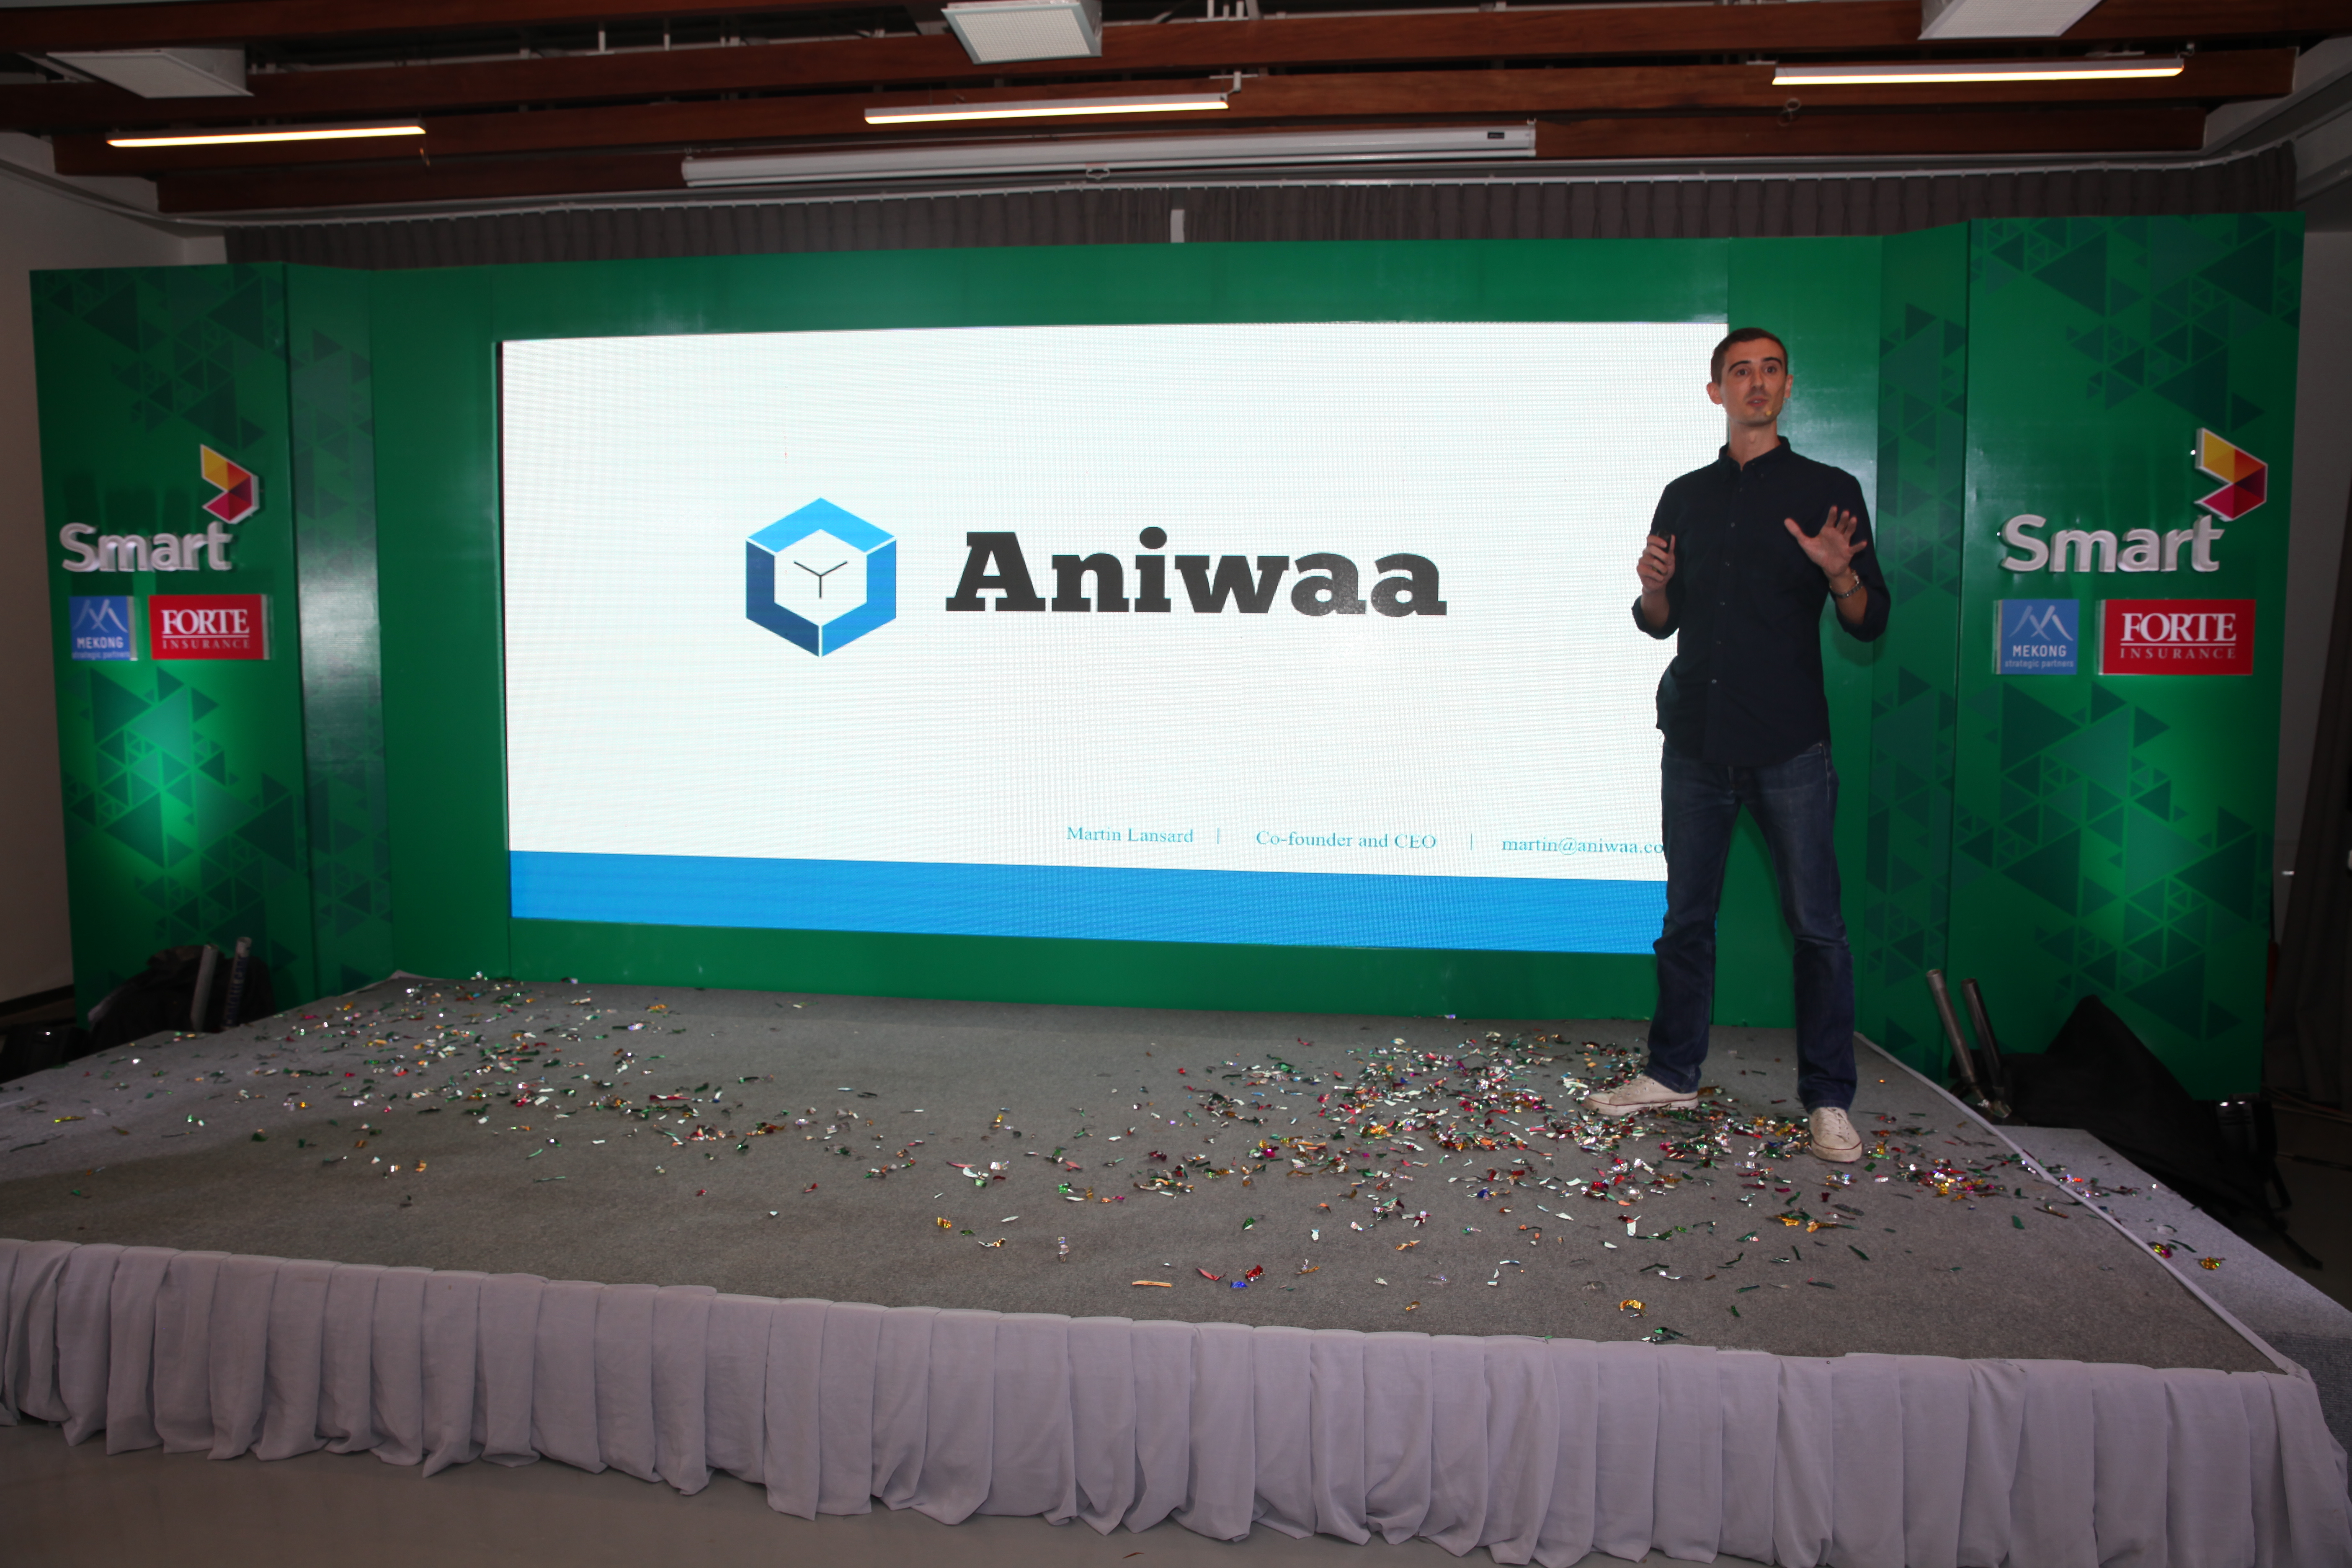 Martin Lansard, Co-founder and CEO of Aniwaa, sharing more about his company for those present at the event